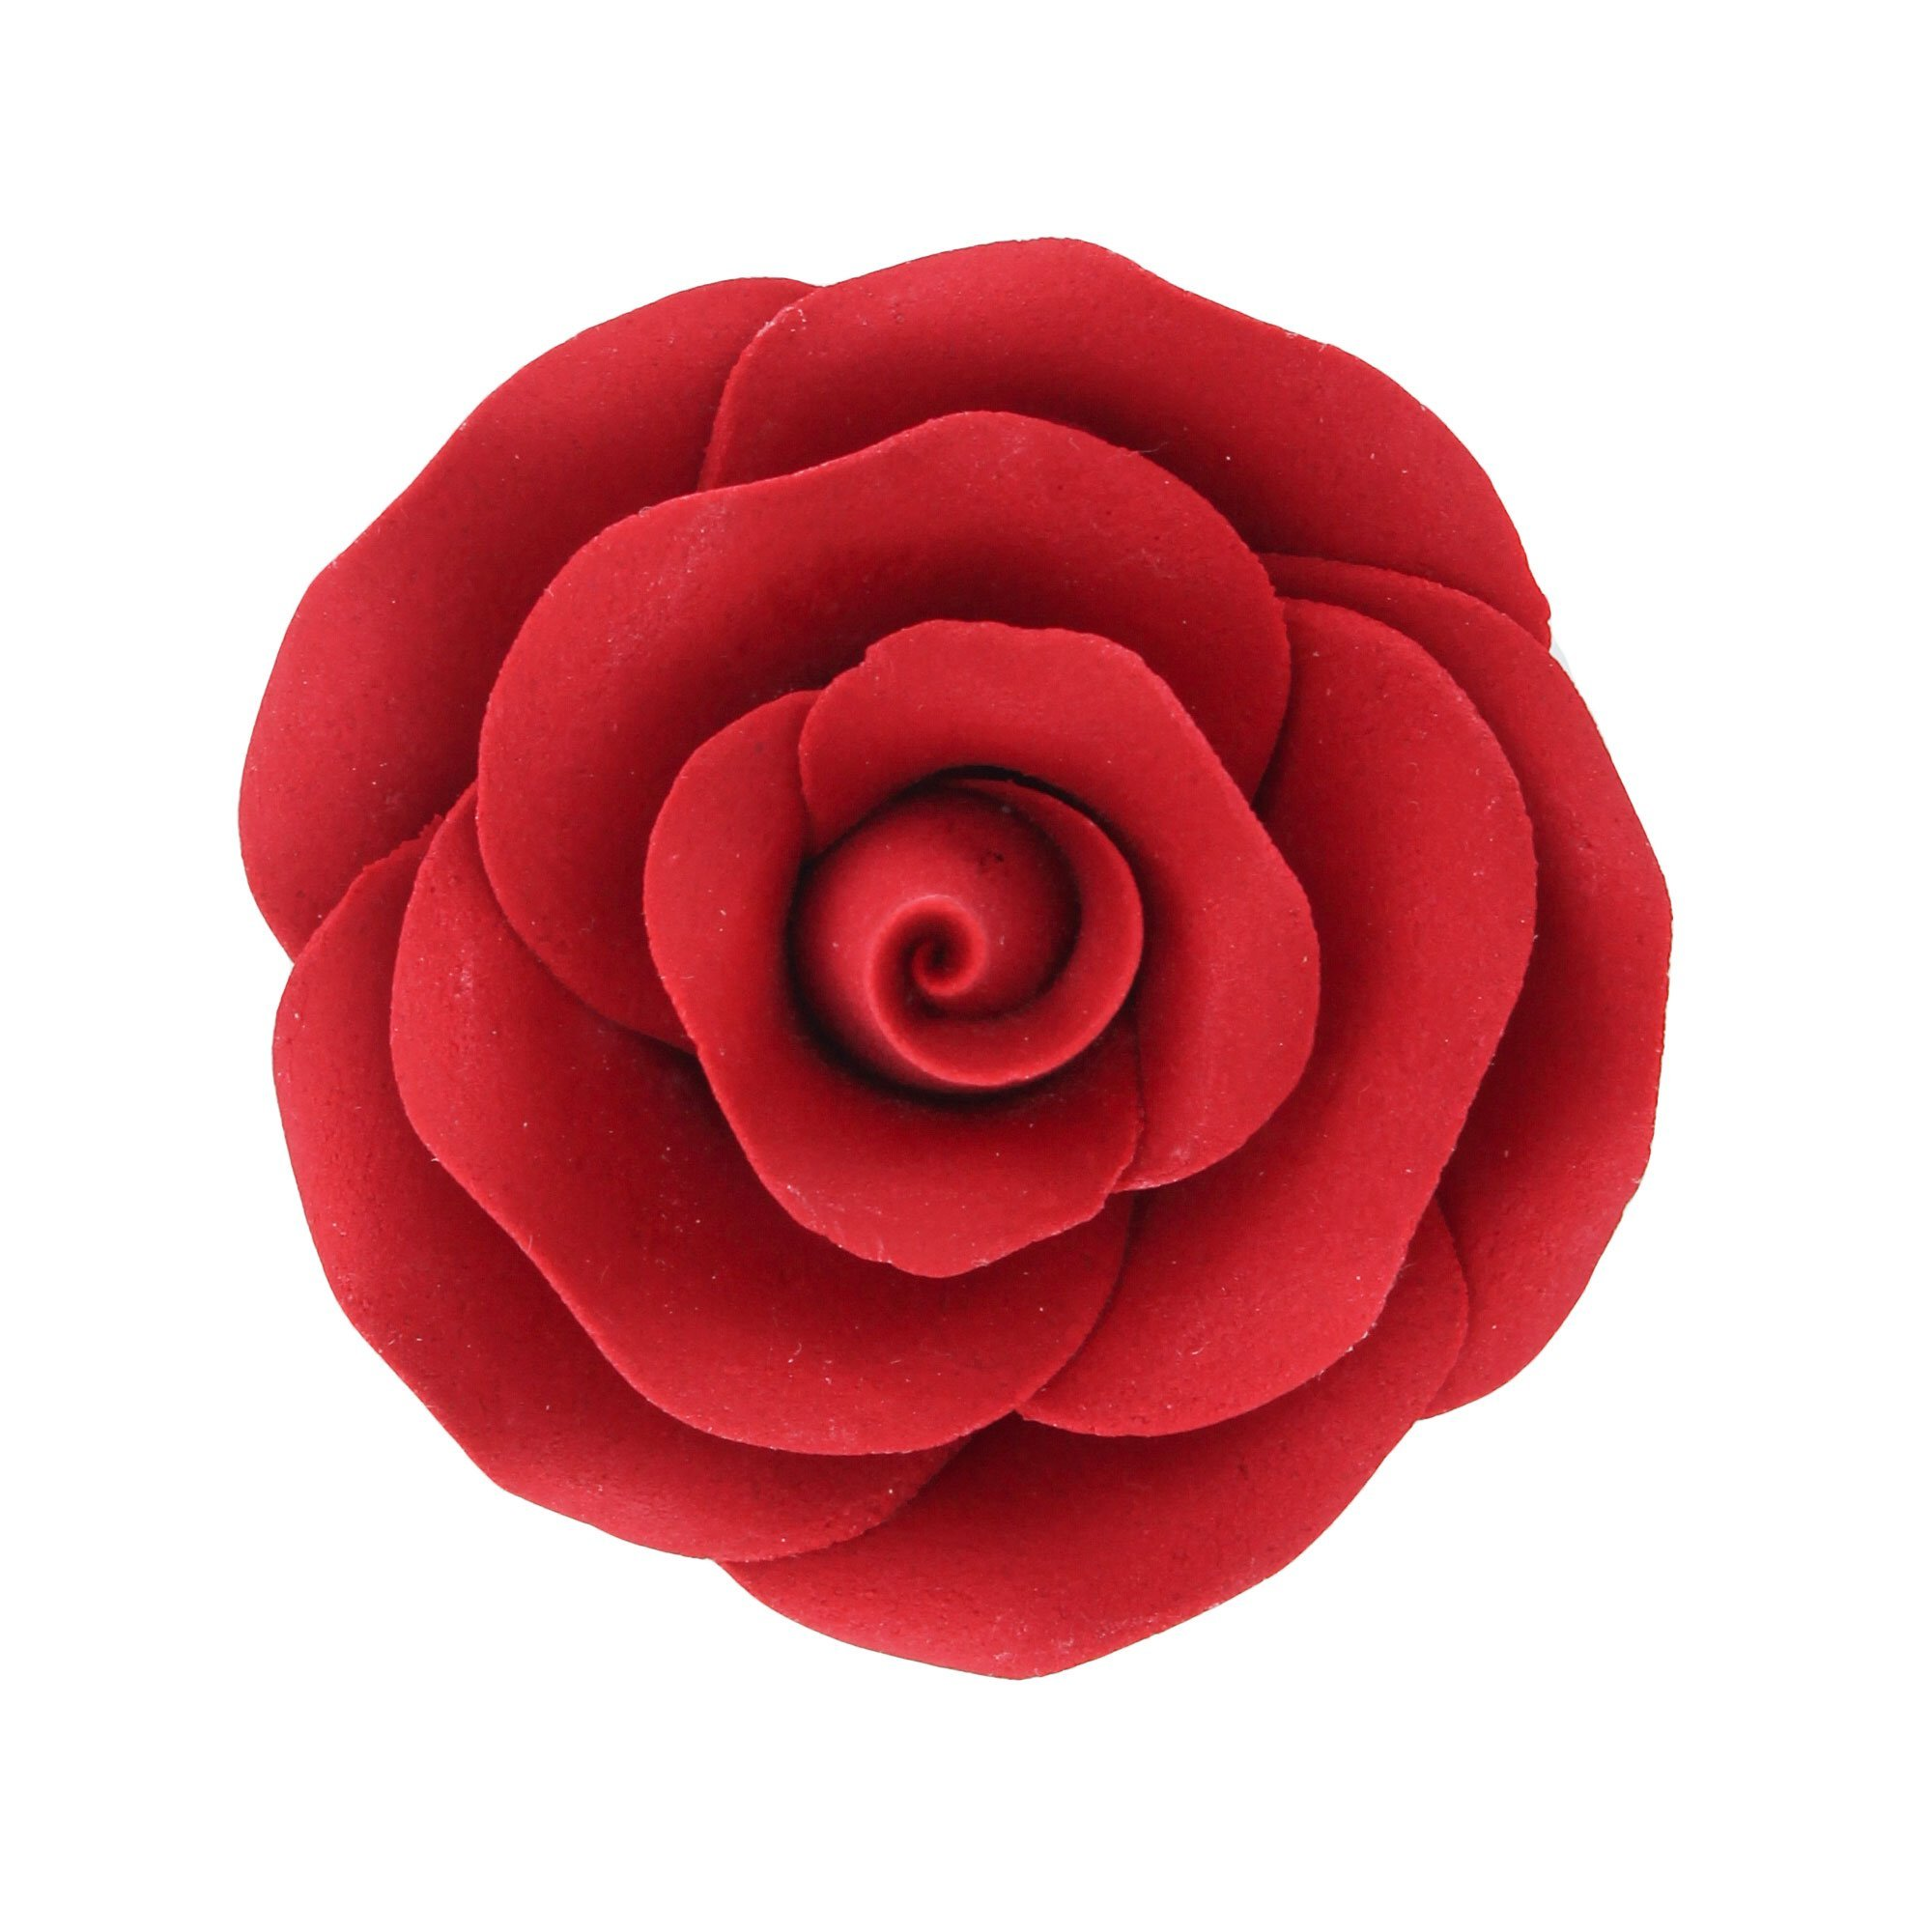 Rose Premium Red, Unwired, Large 12 Count by Chef Alan Tetreault